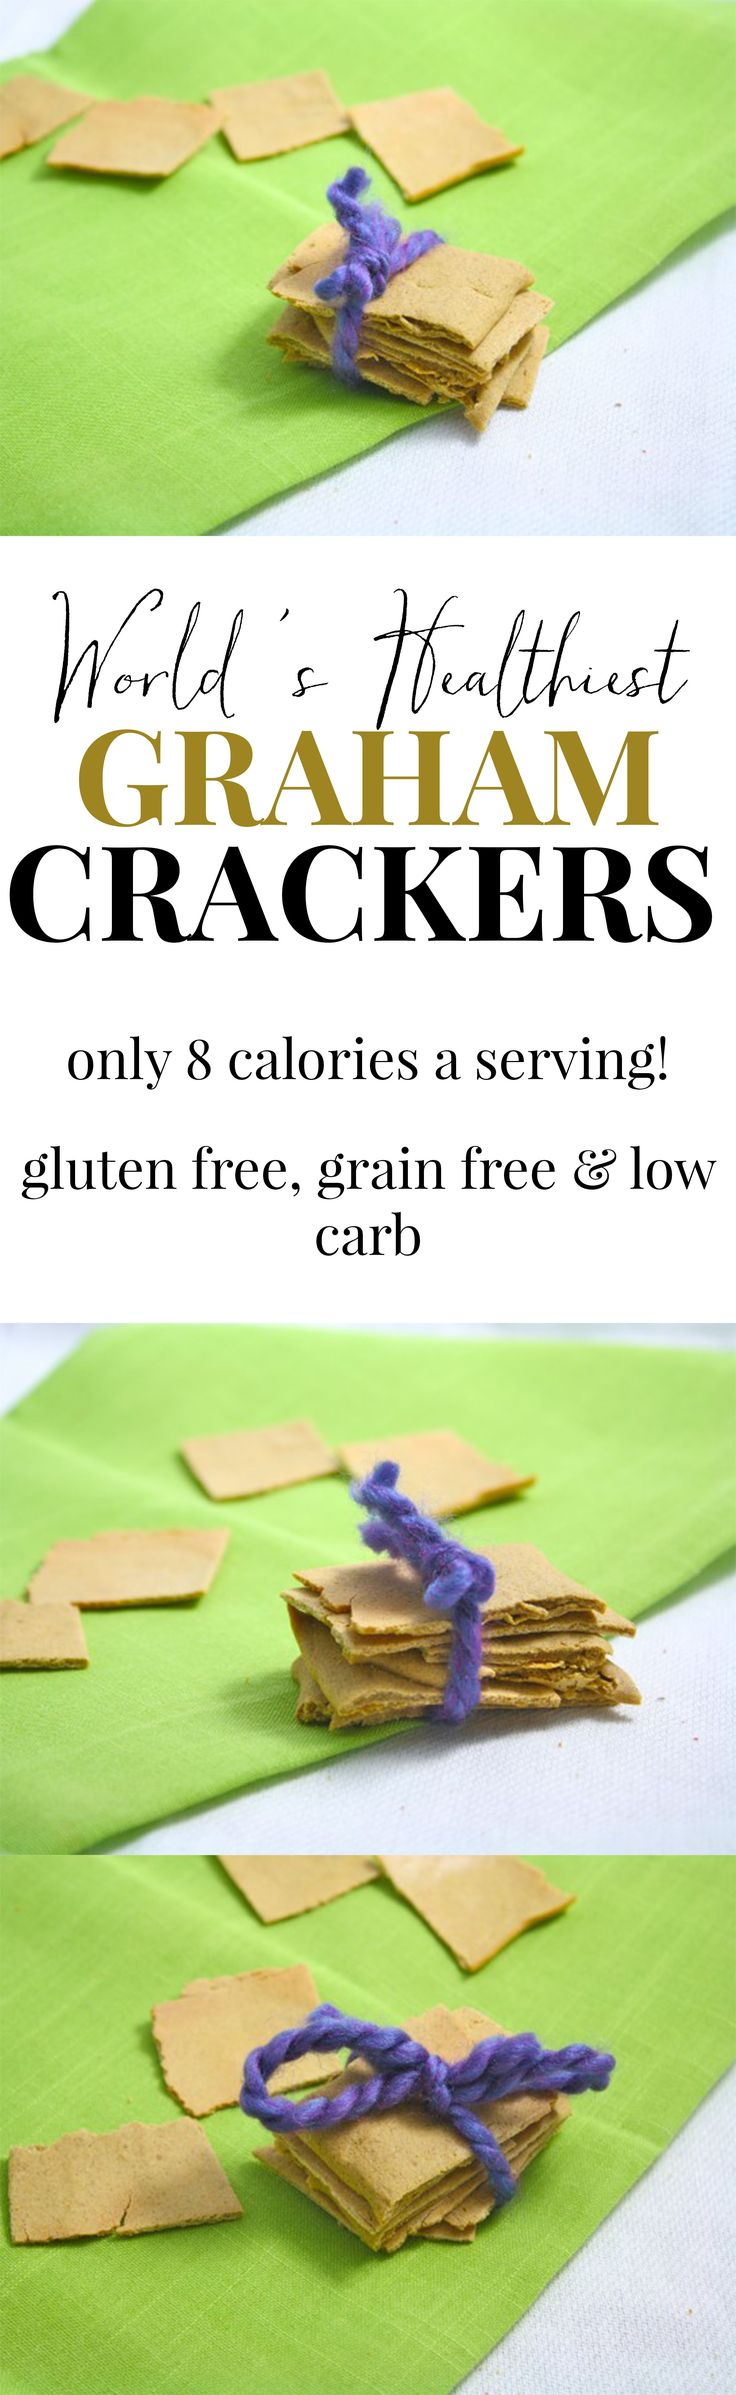 Eight calorie homemade graham crackers. 8 calories!! This recipe has made my beloved s'mores forever better. Now I can have as many as I want!